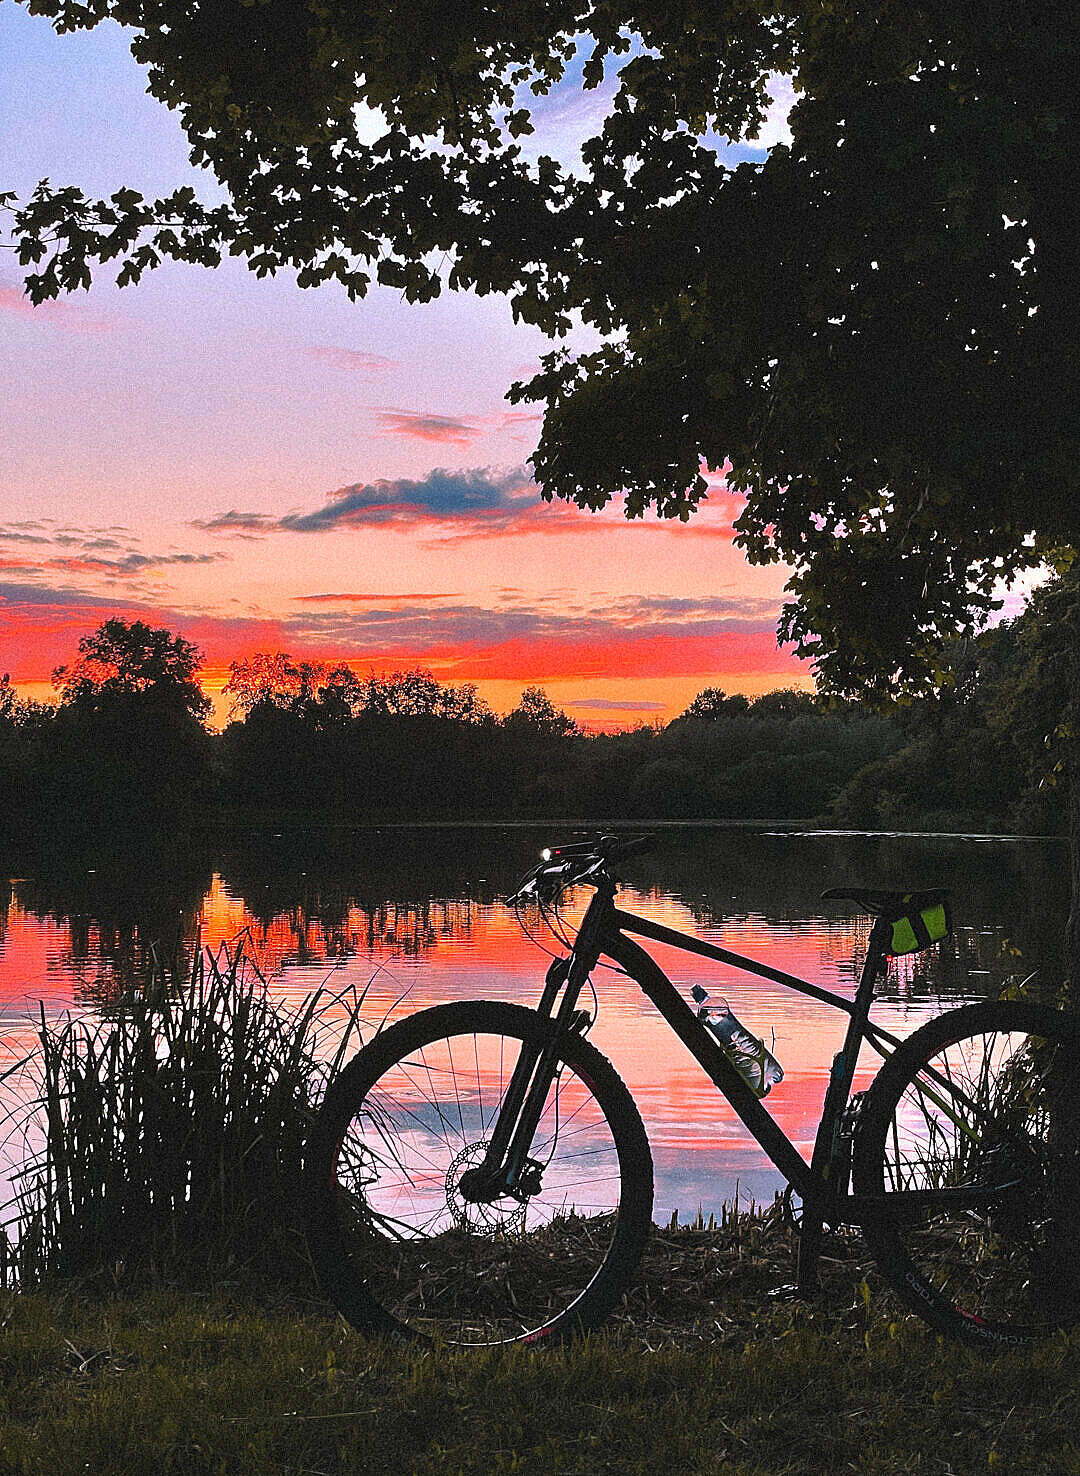 Download Evening MTB Ride Mountain Bike with Sunset Golden Sky FREE Stock Photo